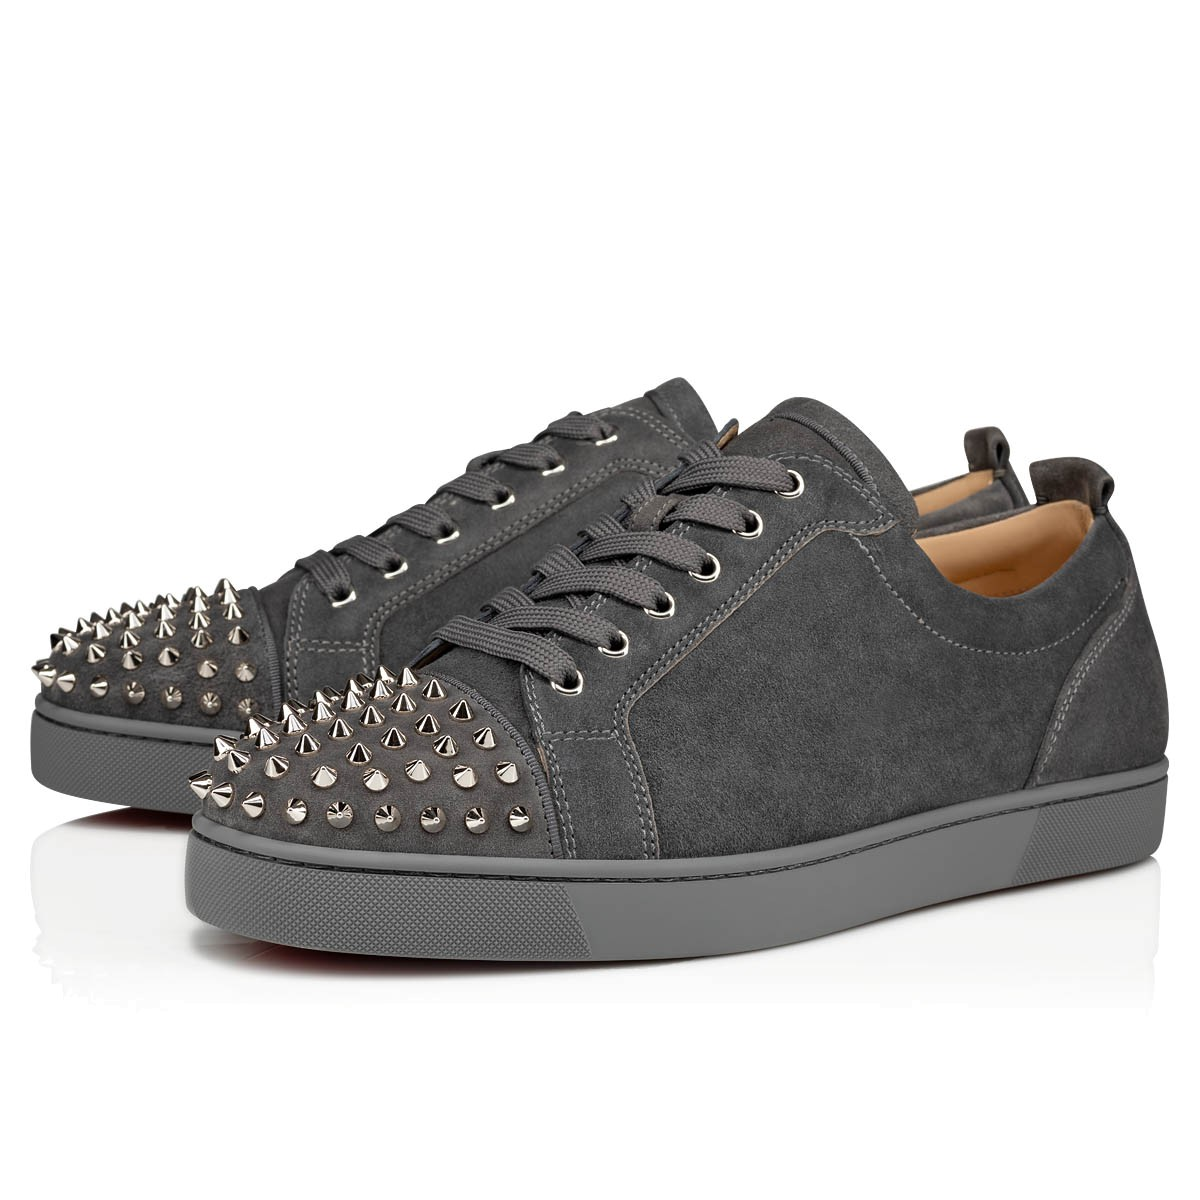 detailed look e4617 0de29 Louis Junior Spikes Shadow/Sv Suede - Men Shoes - Christian Louboutin